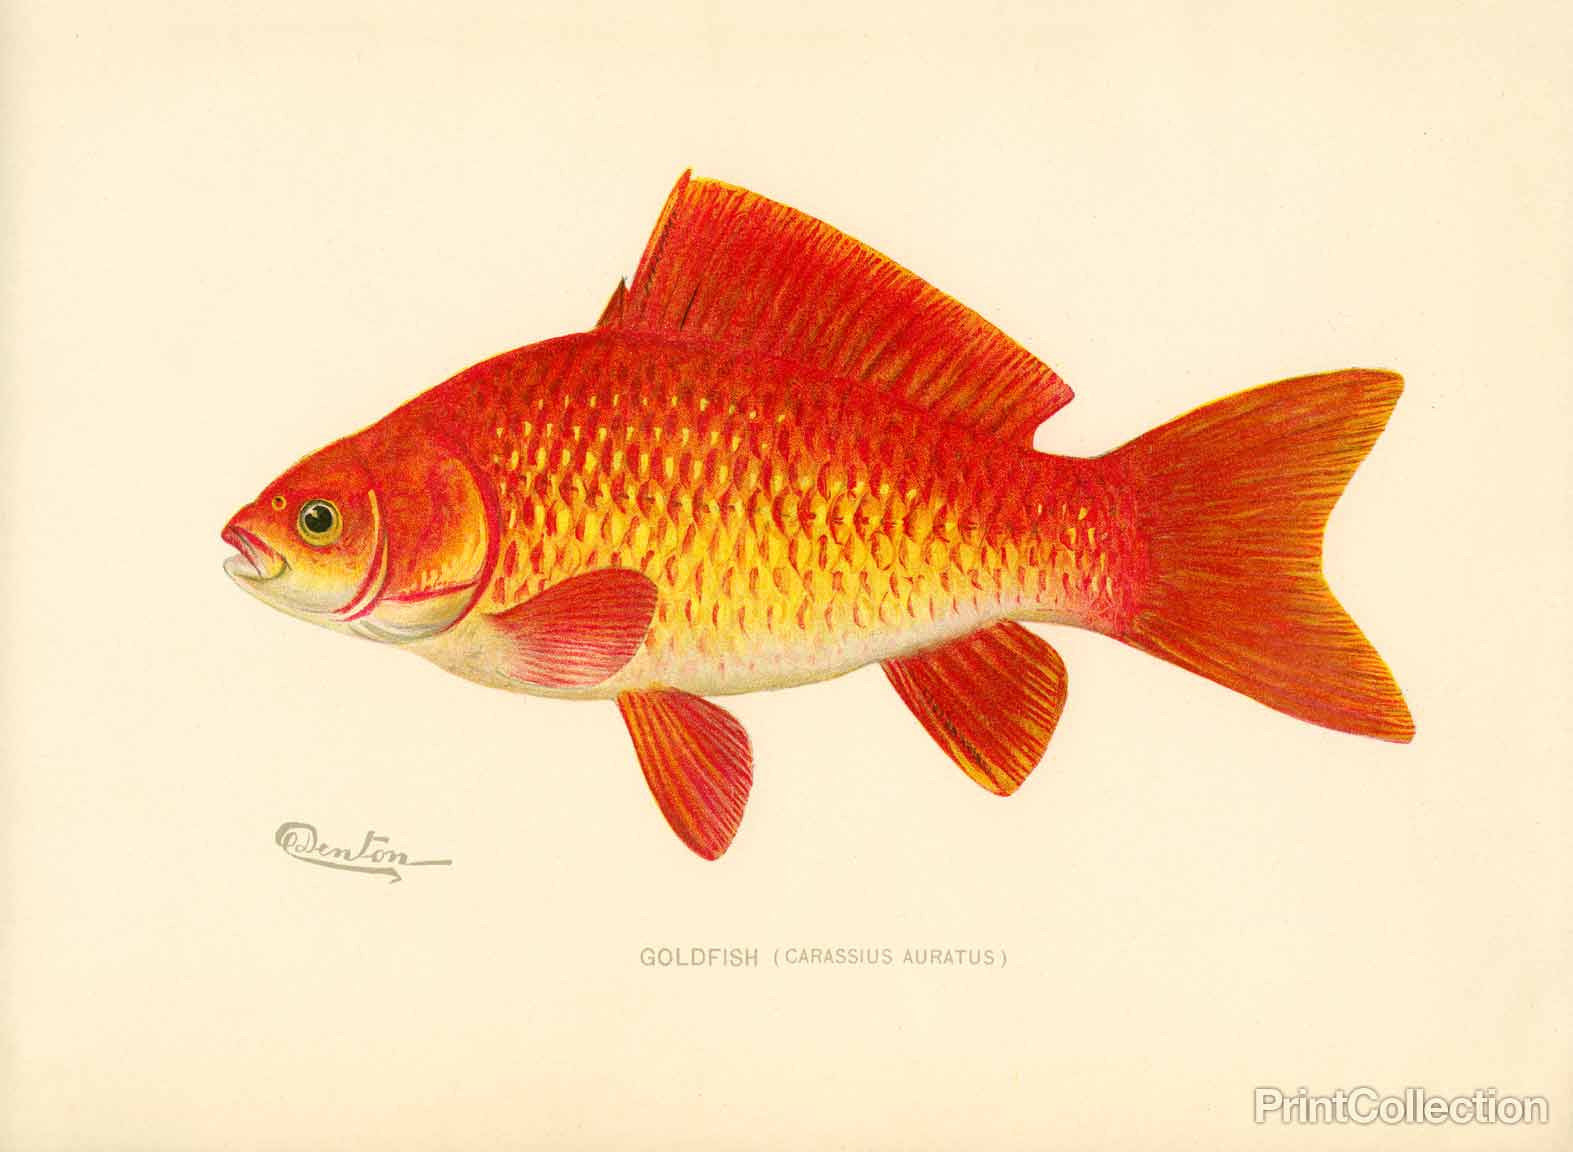 Print Collection - Goldfish